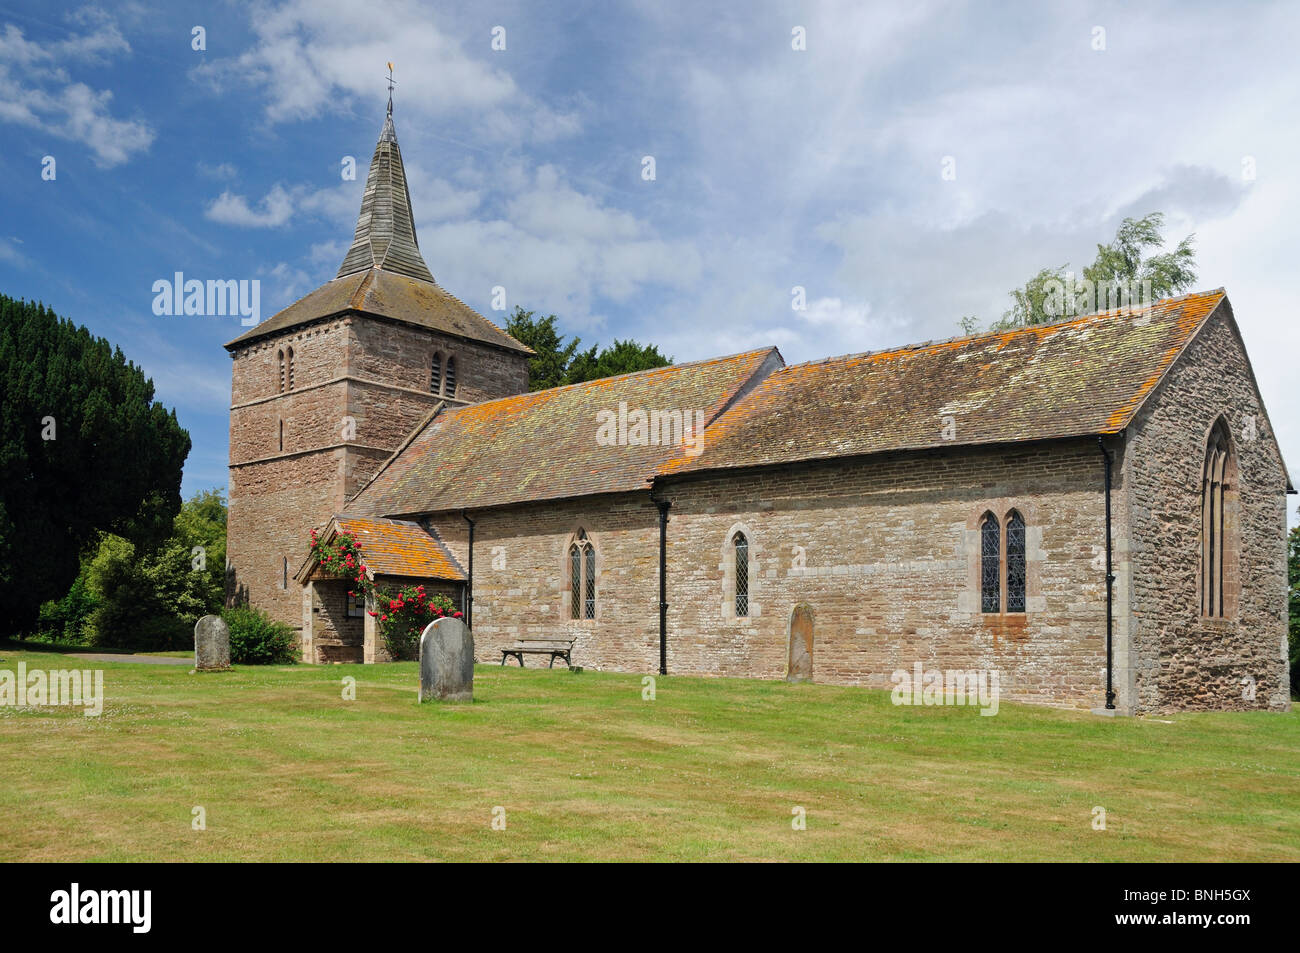 The Church of St. Michael & All Angels, in Edvin Ralph, Herefordshire, England - Stock Image